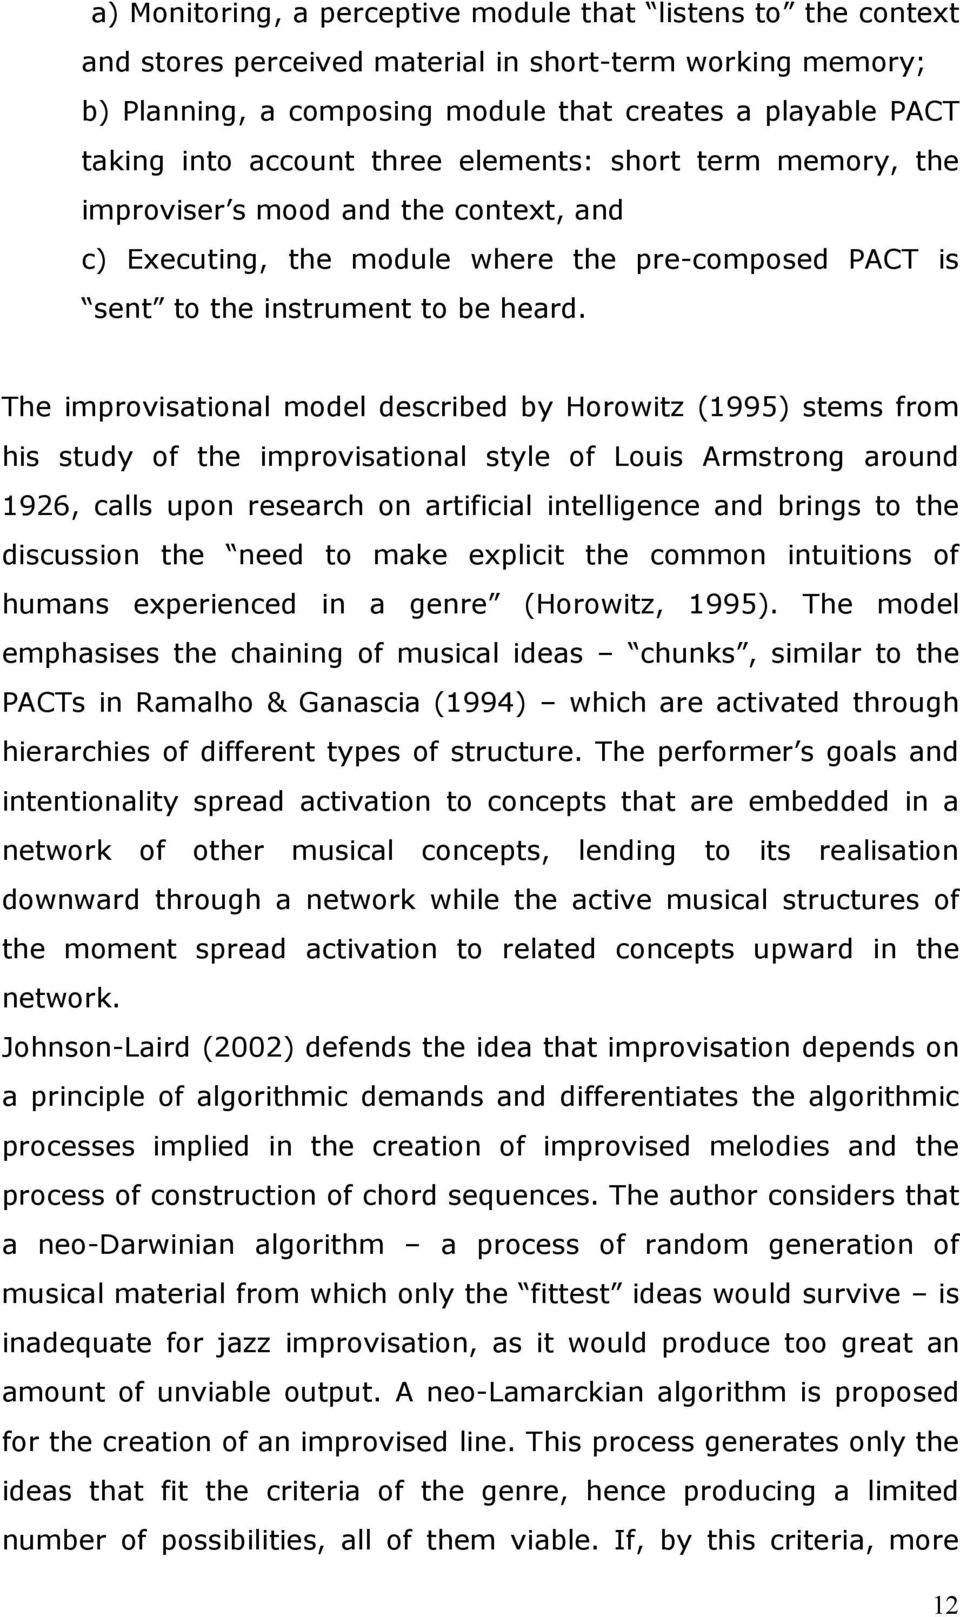 The improvisational model described by Horowitz (1995) stems from his study of the improvisational style of Louis Armstrong around 1926, calls upon research on artificial intelligence and brings to